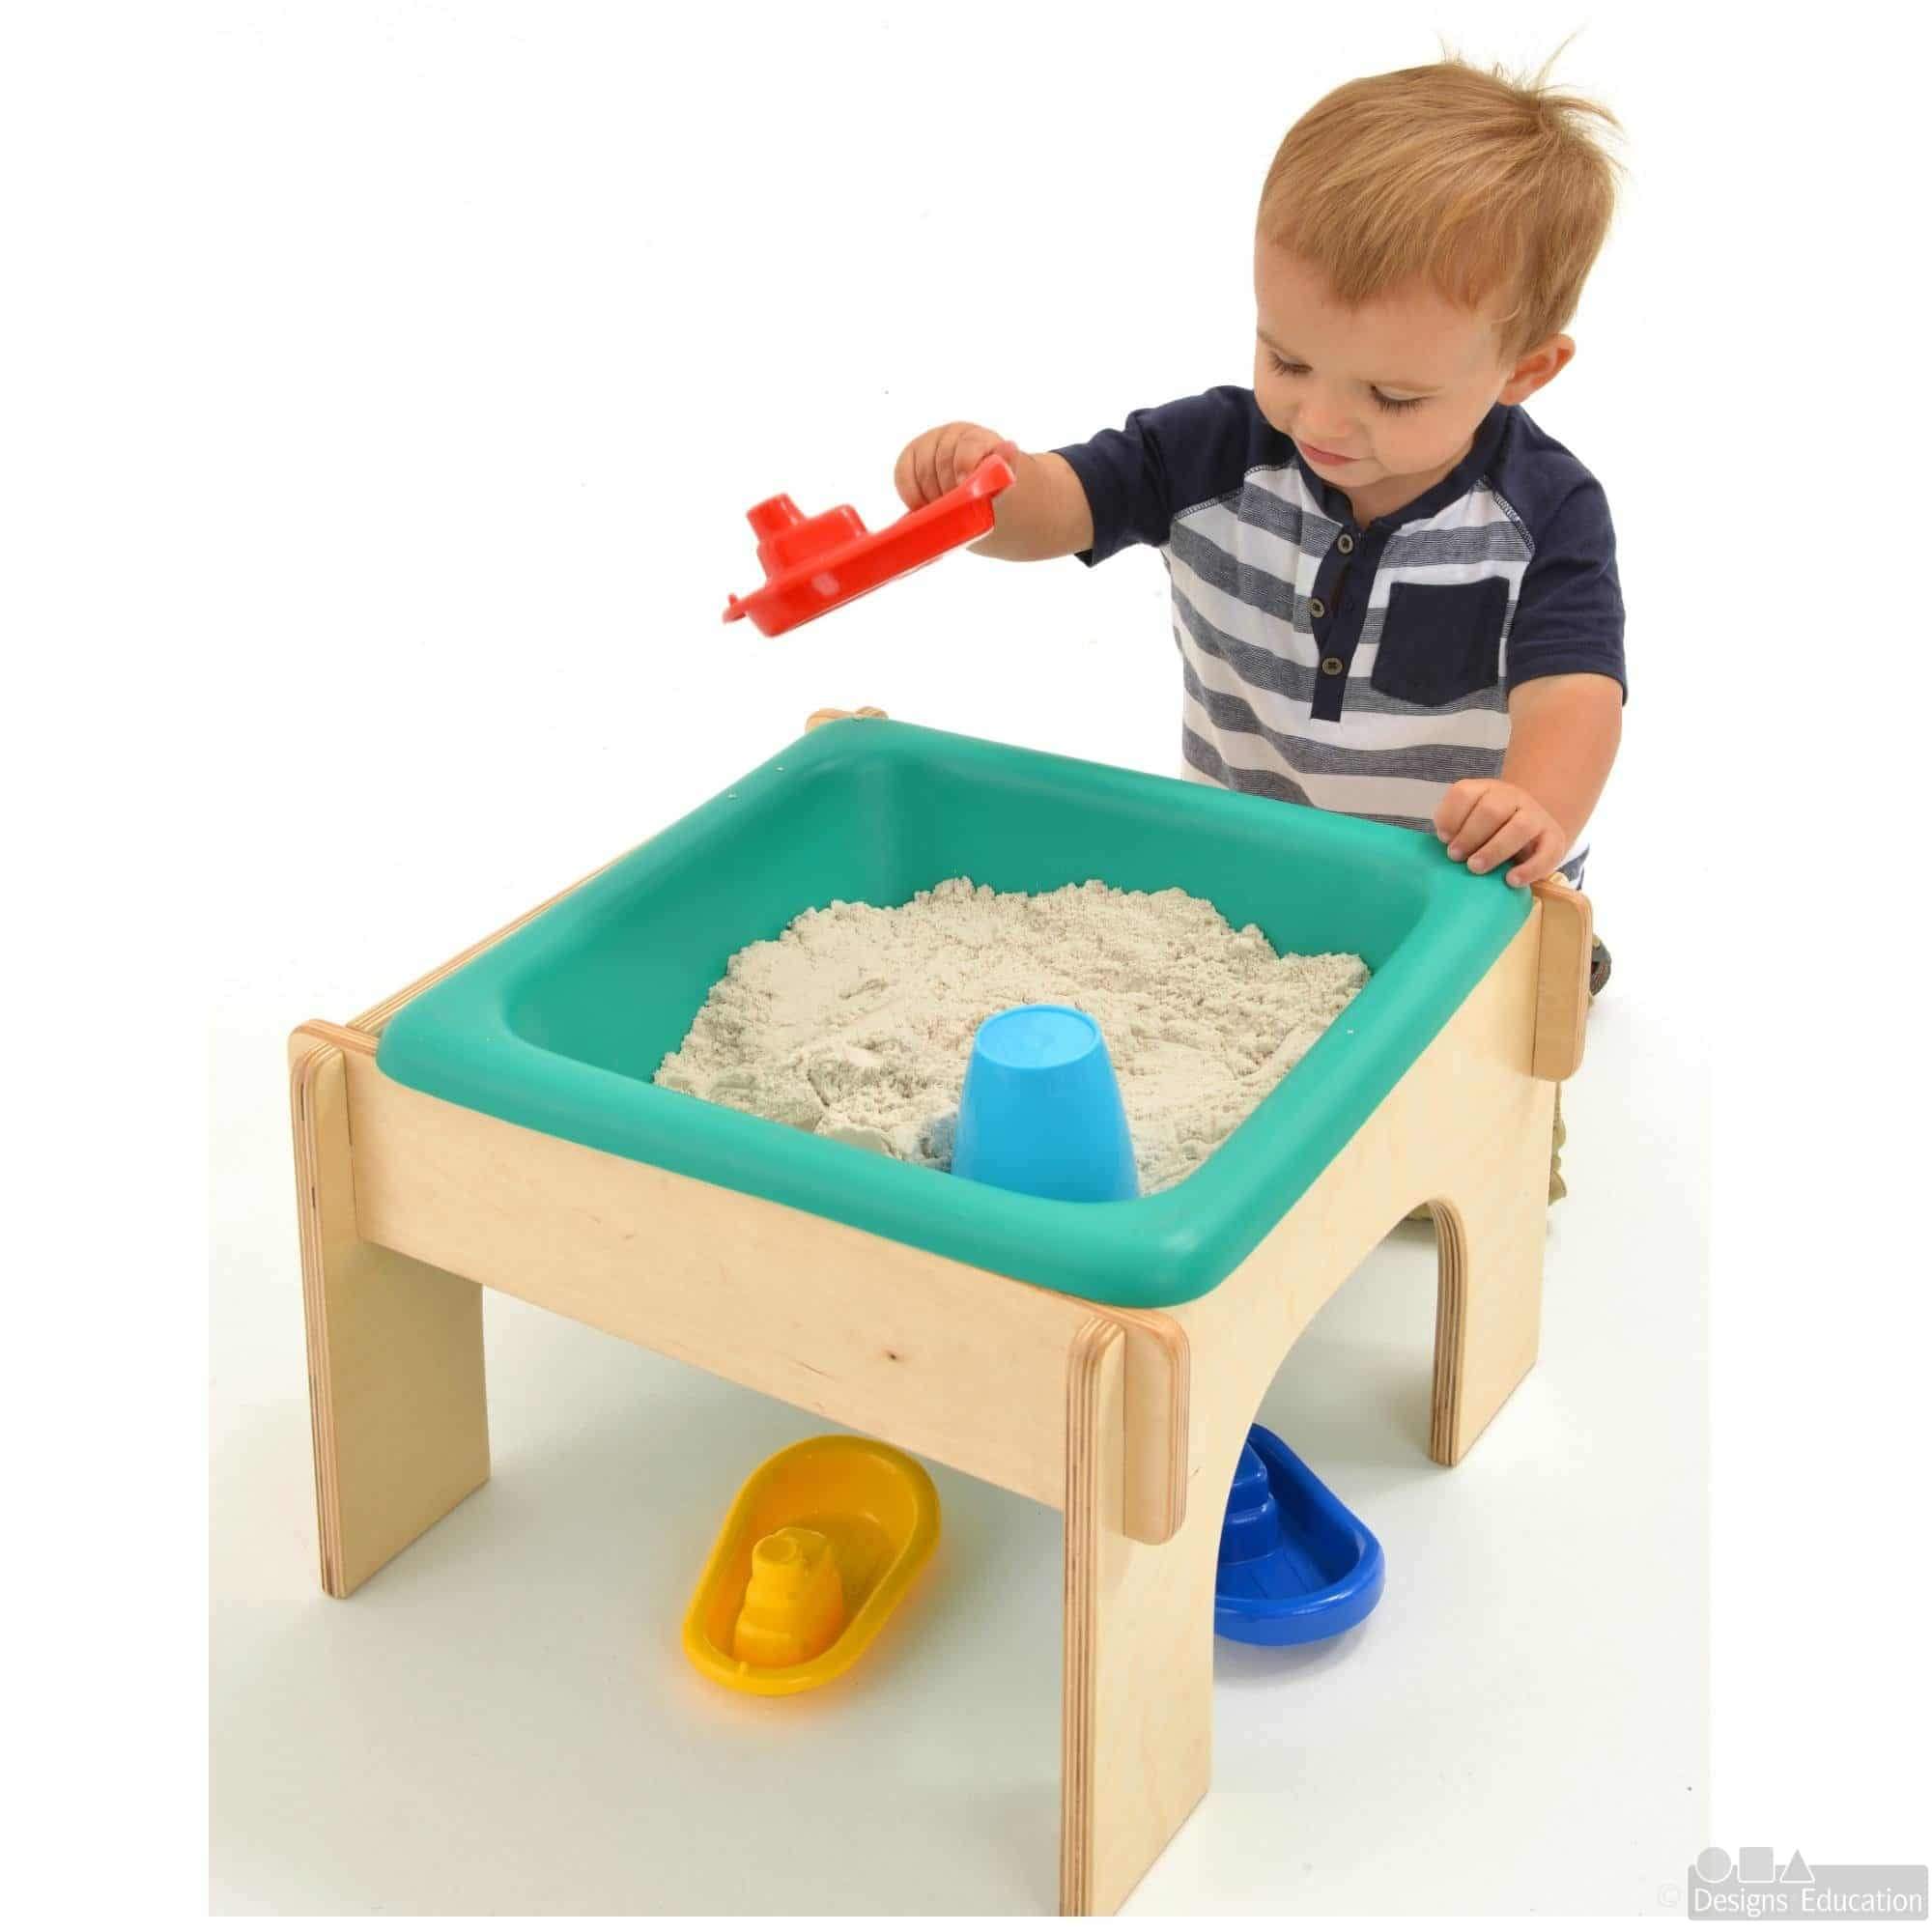 Slot To her Sand and Water Table Designs For Education